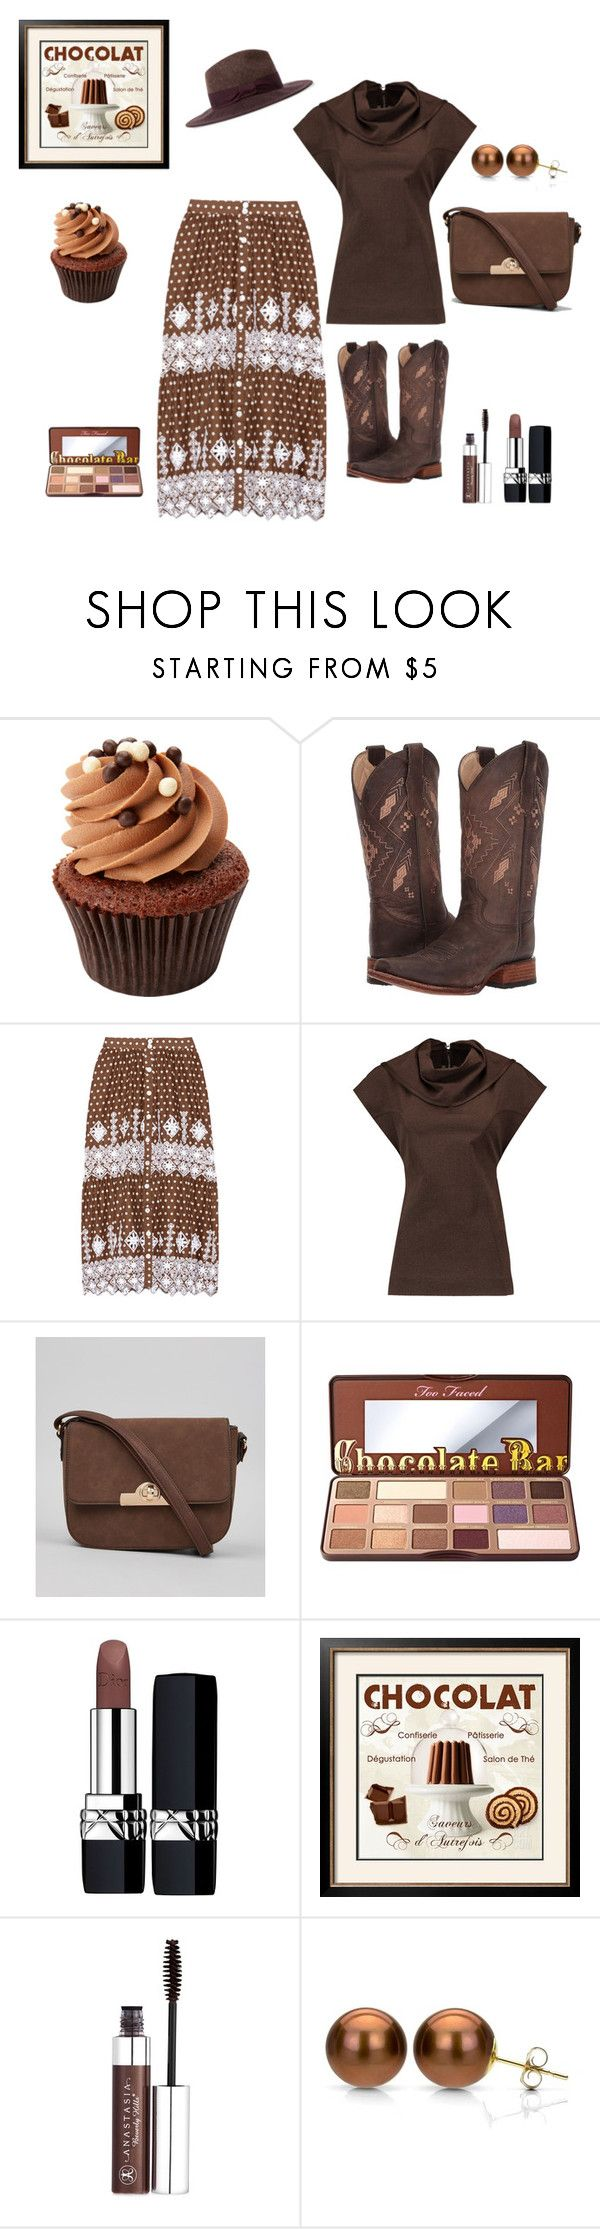 """Chocolat"" by chauert ❤ liked on Polyvore featuring Corral, Miguelina, Rick Owens, New Look, Too Faced Cosmetics, Christian Dior, Artistica, Anastasia Beverly Hills, DaVonna and Paul Smith"